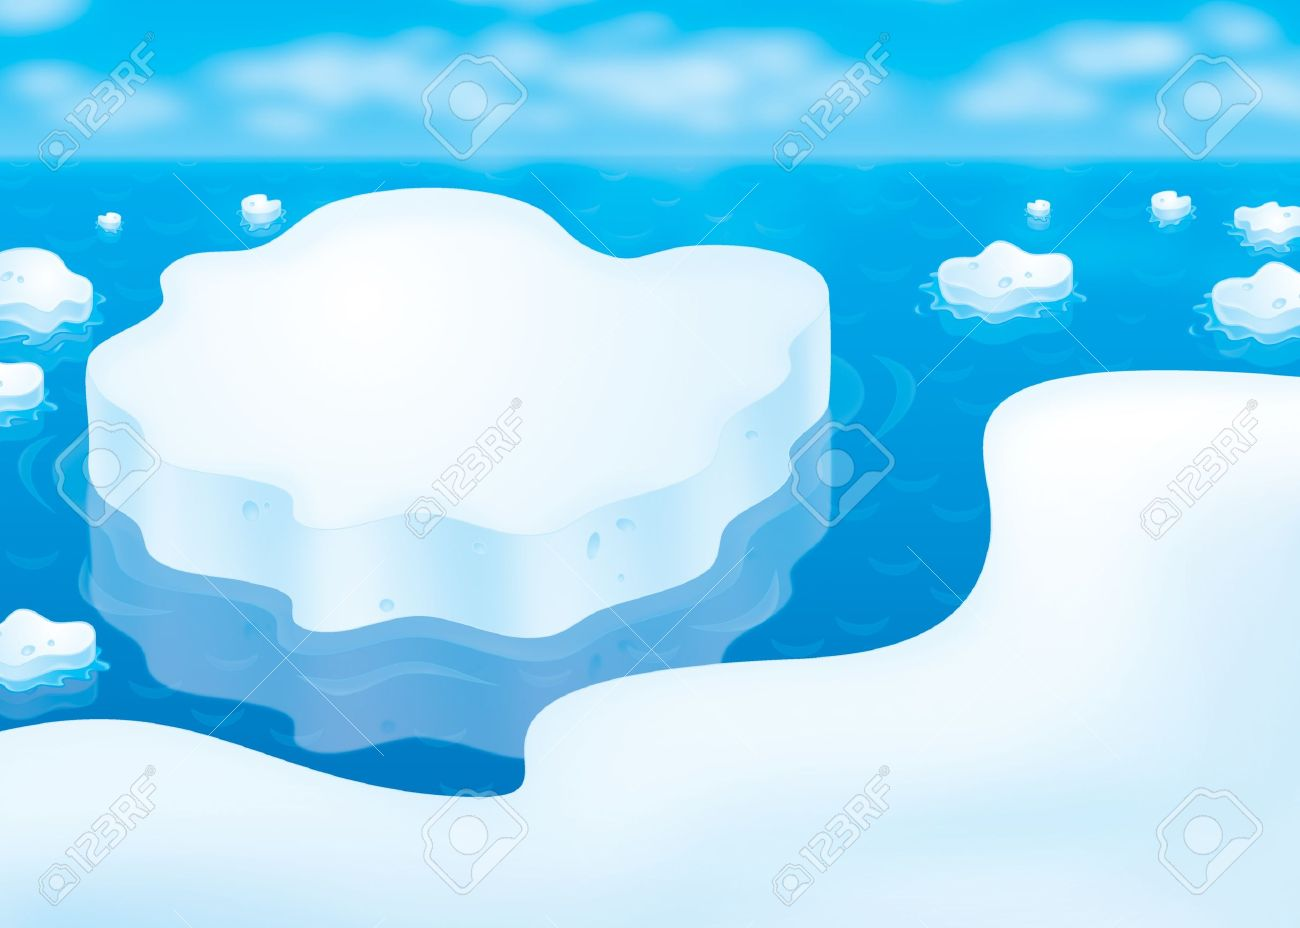 block of ice clipart #22